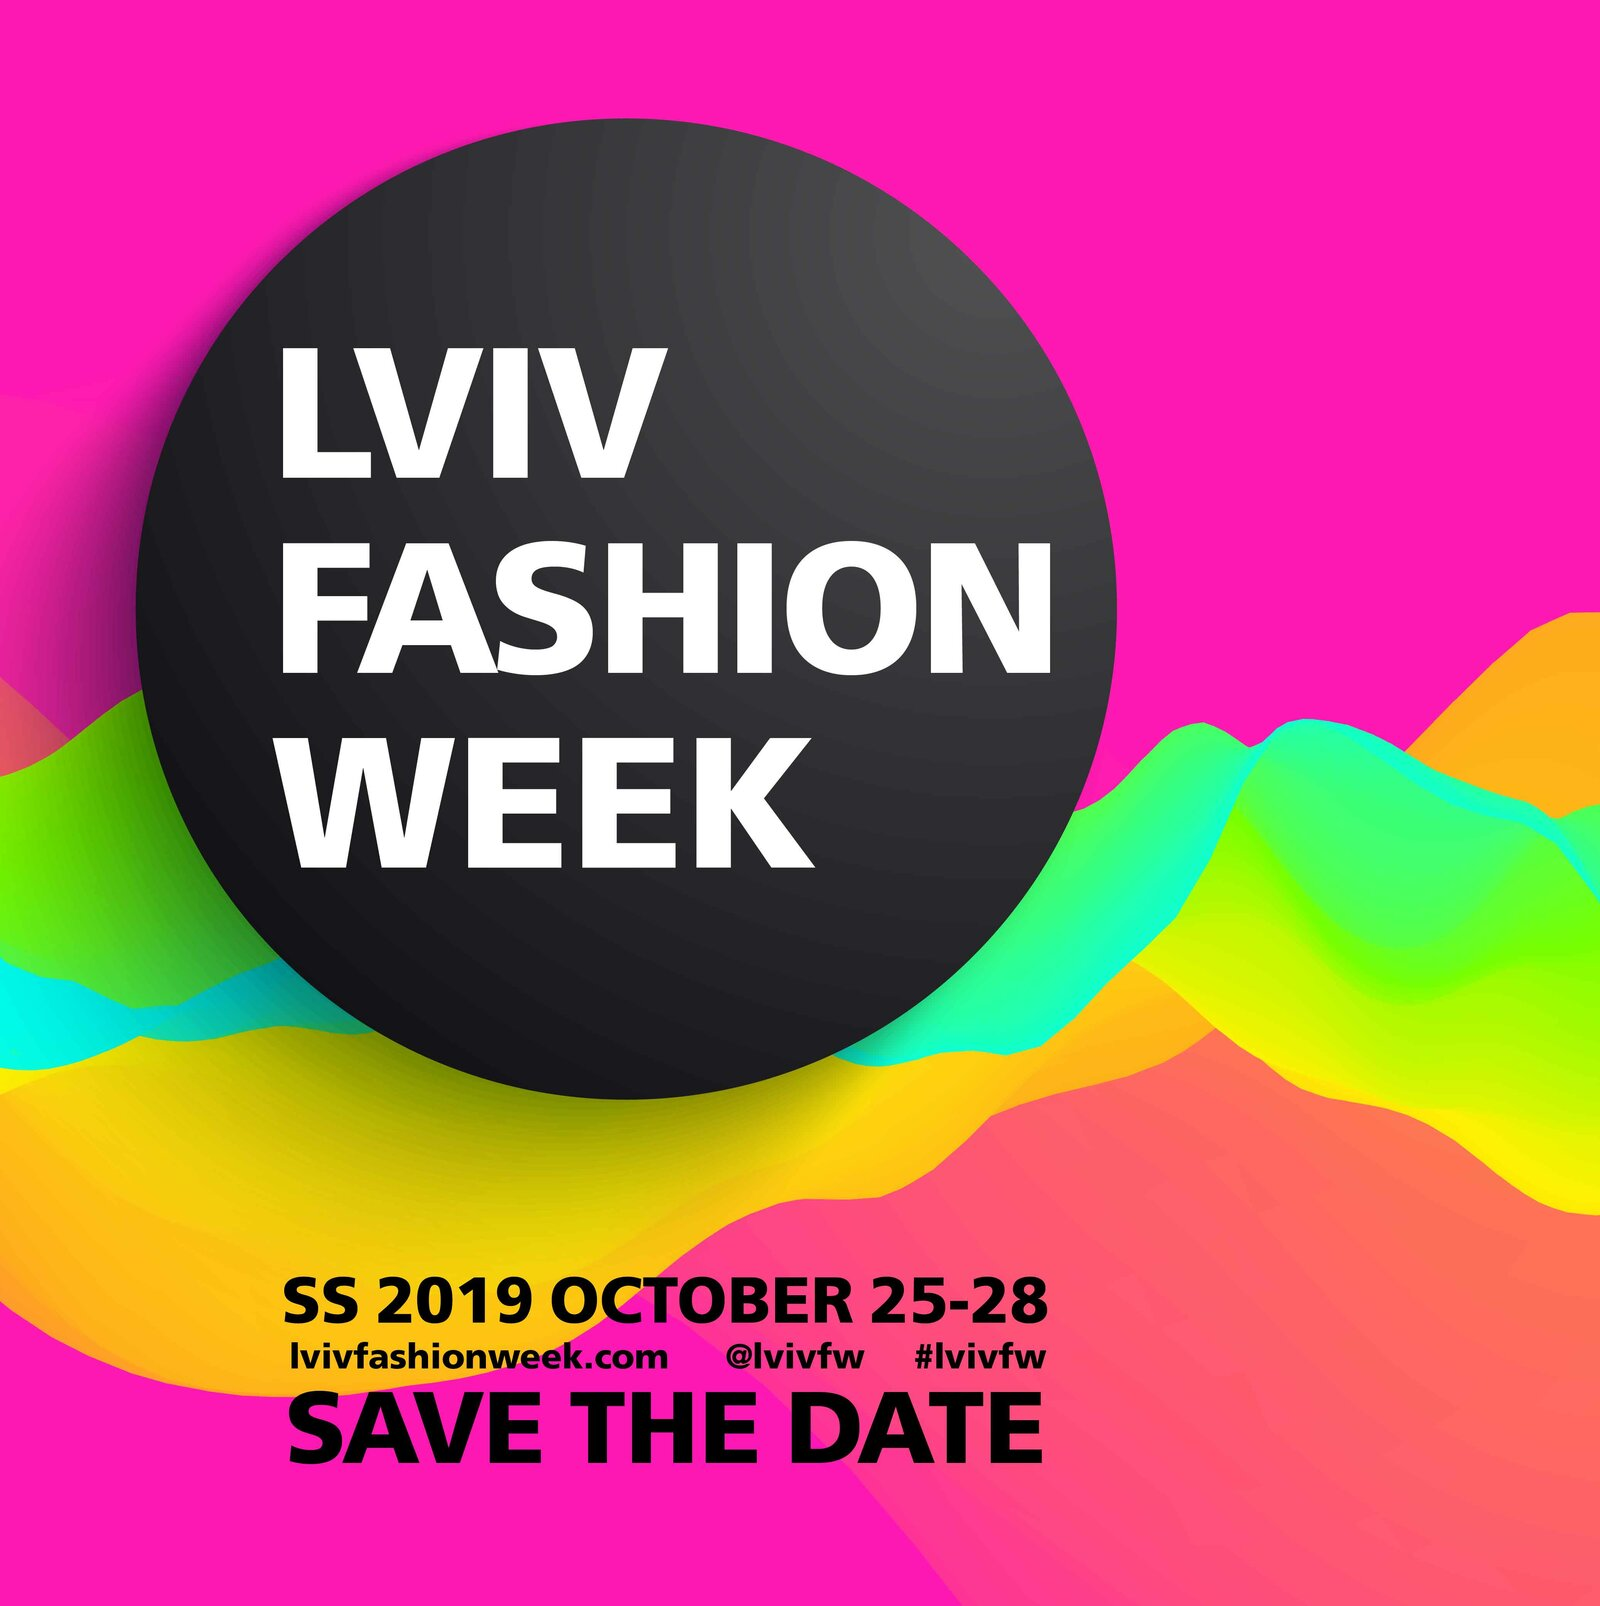 Програма Lviv Fashion Week SS 2019